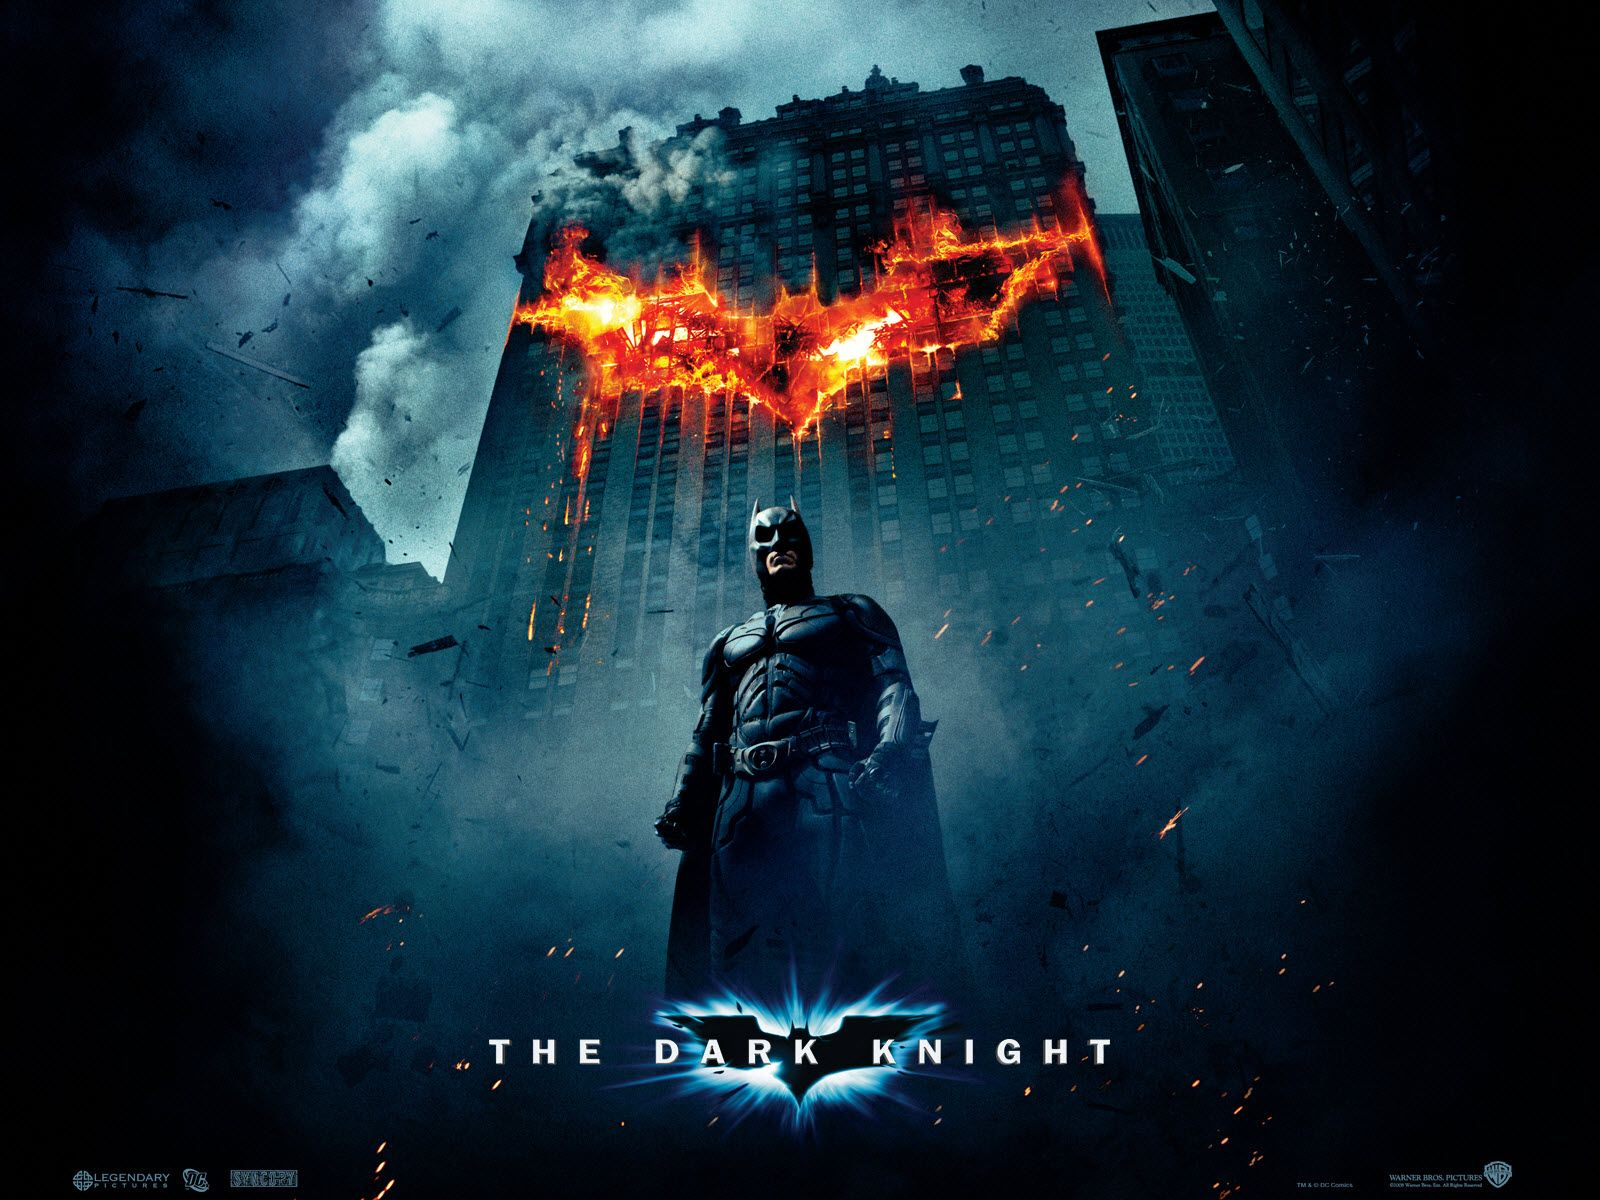 the_dark_knight_movie-normal.jpg (1600×1200)